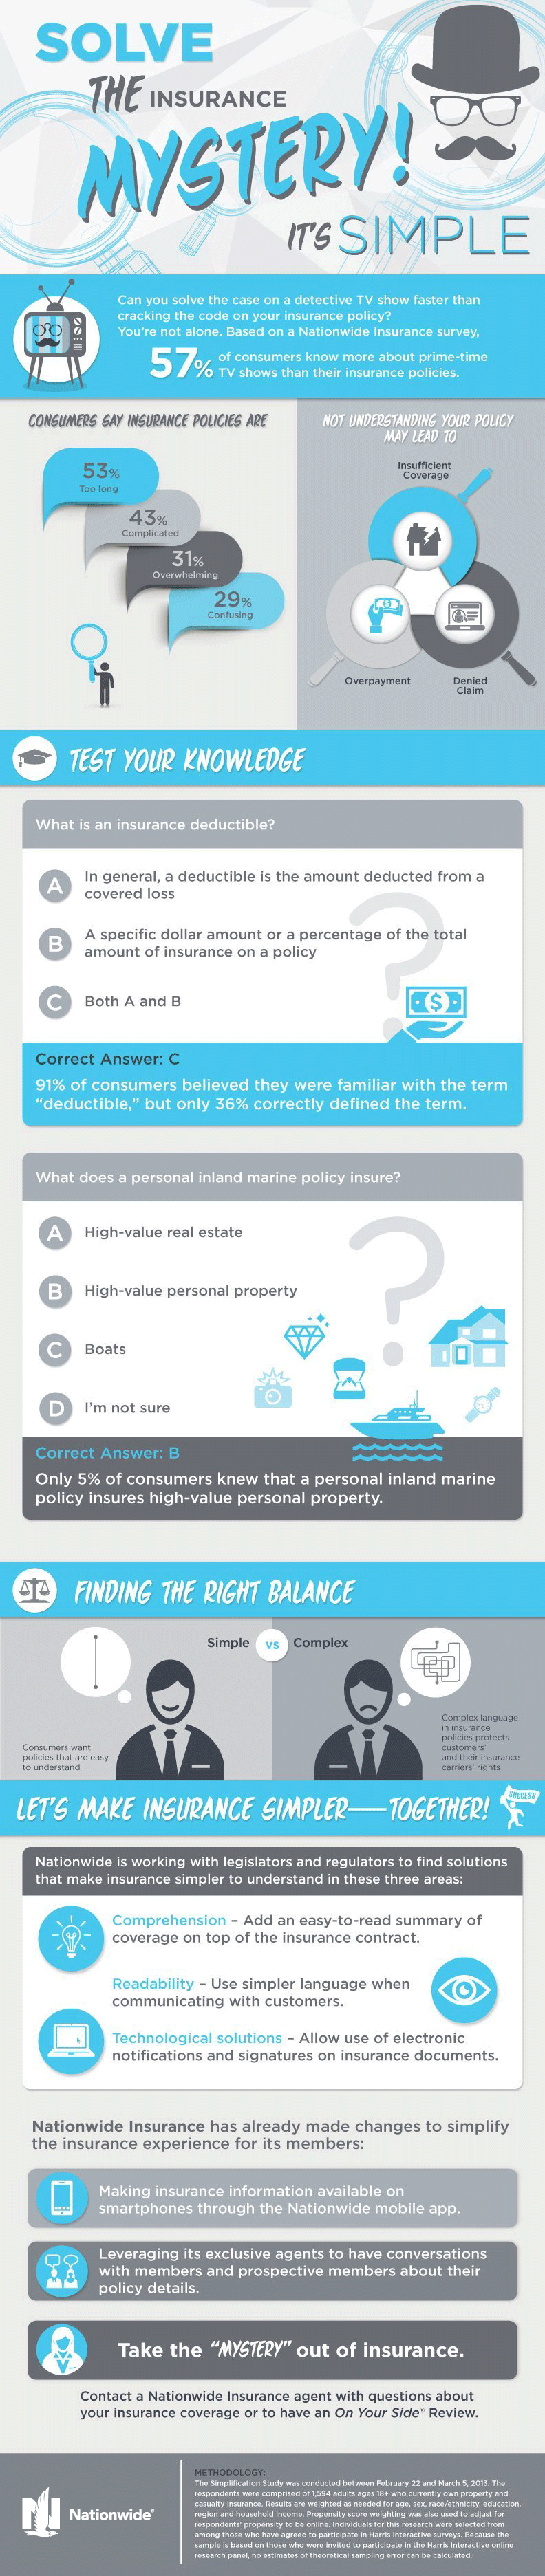 Solve the Insurance Mystery and Understand the Basics of Your Insurance Policy [Infographic]